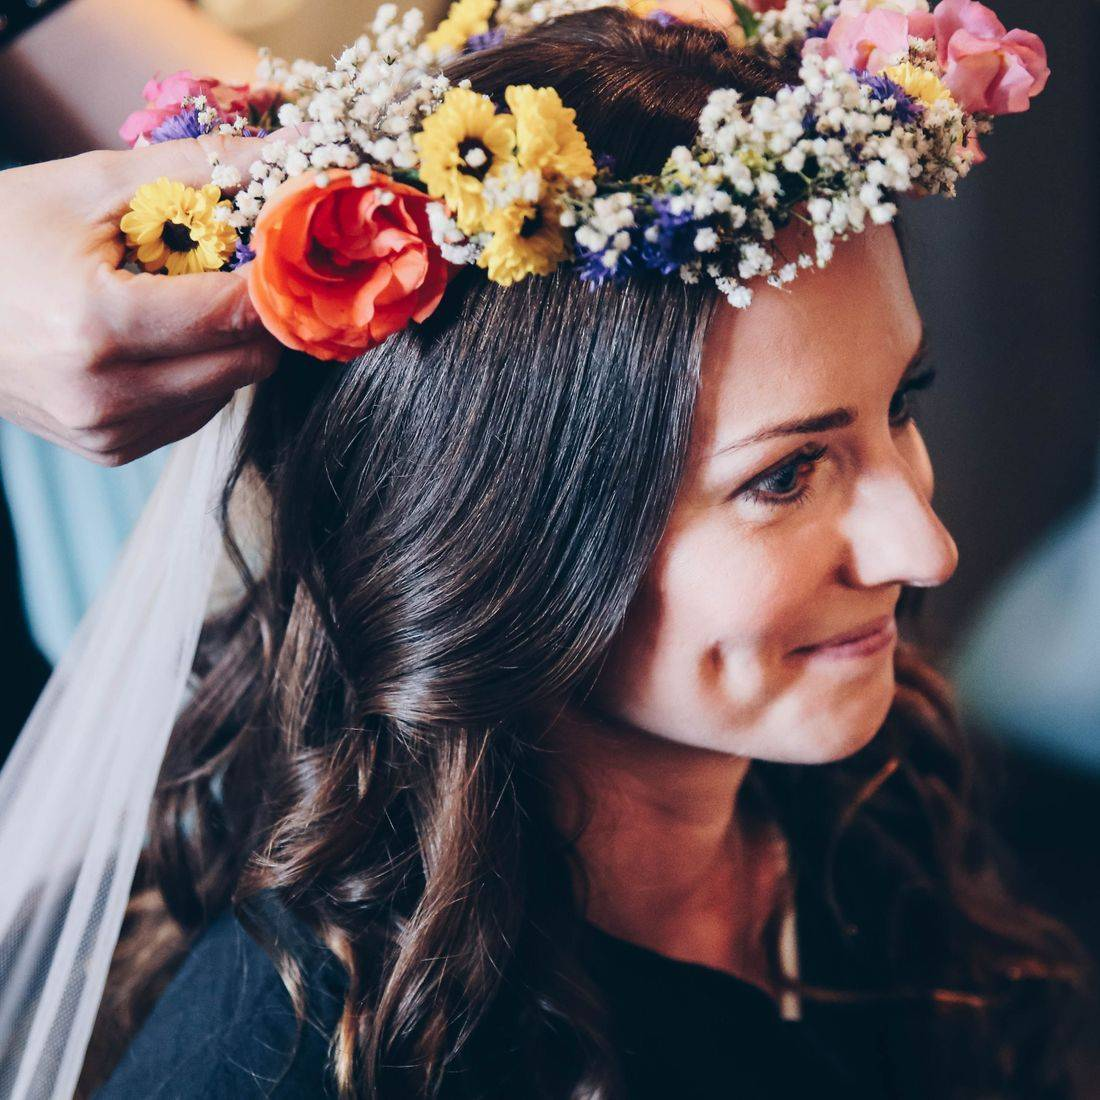 Flower Crown, Bridal Florist, Warwickshire Solihull Florist, Wedding Flowers